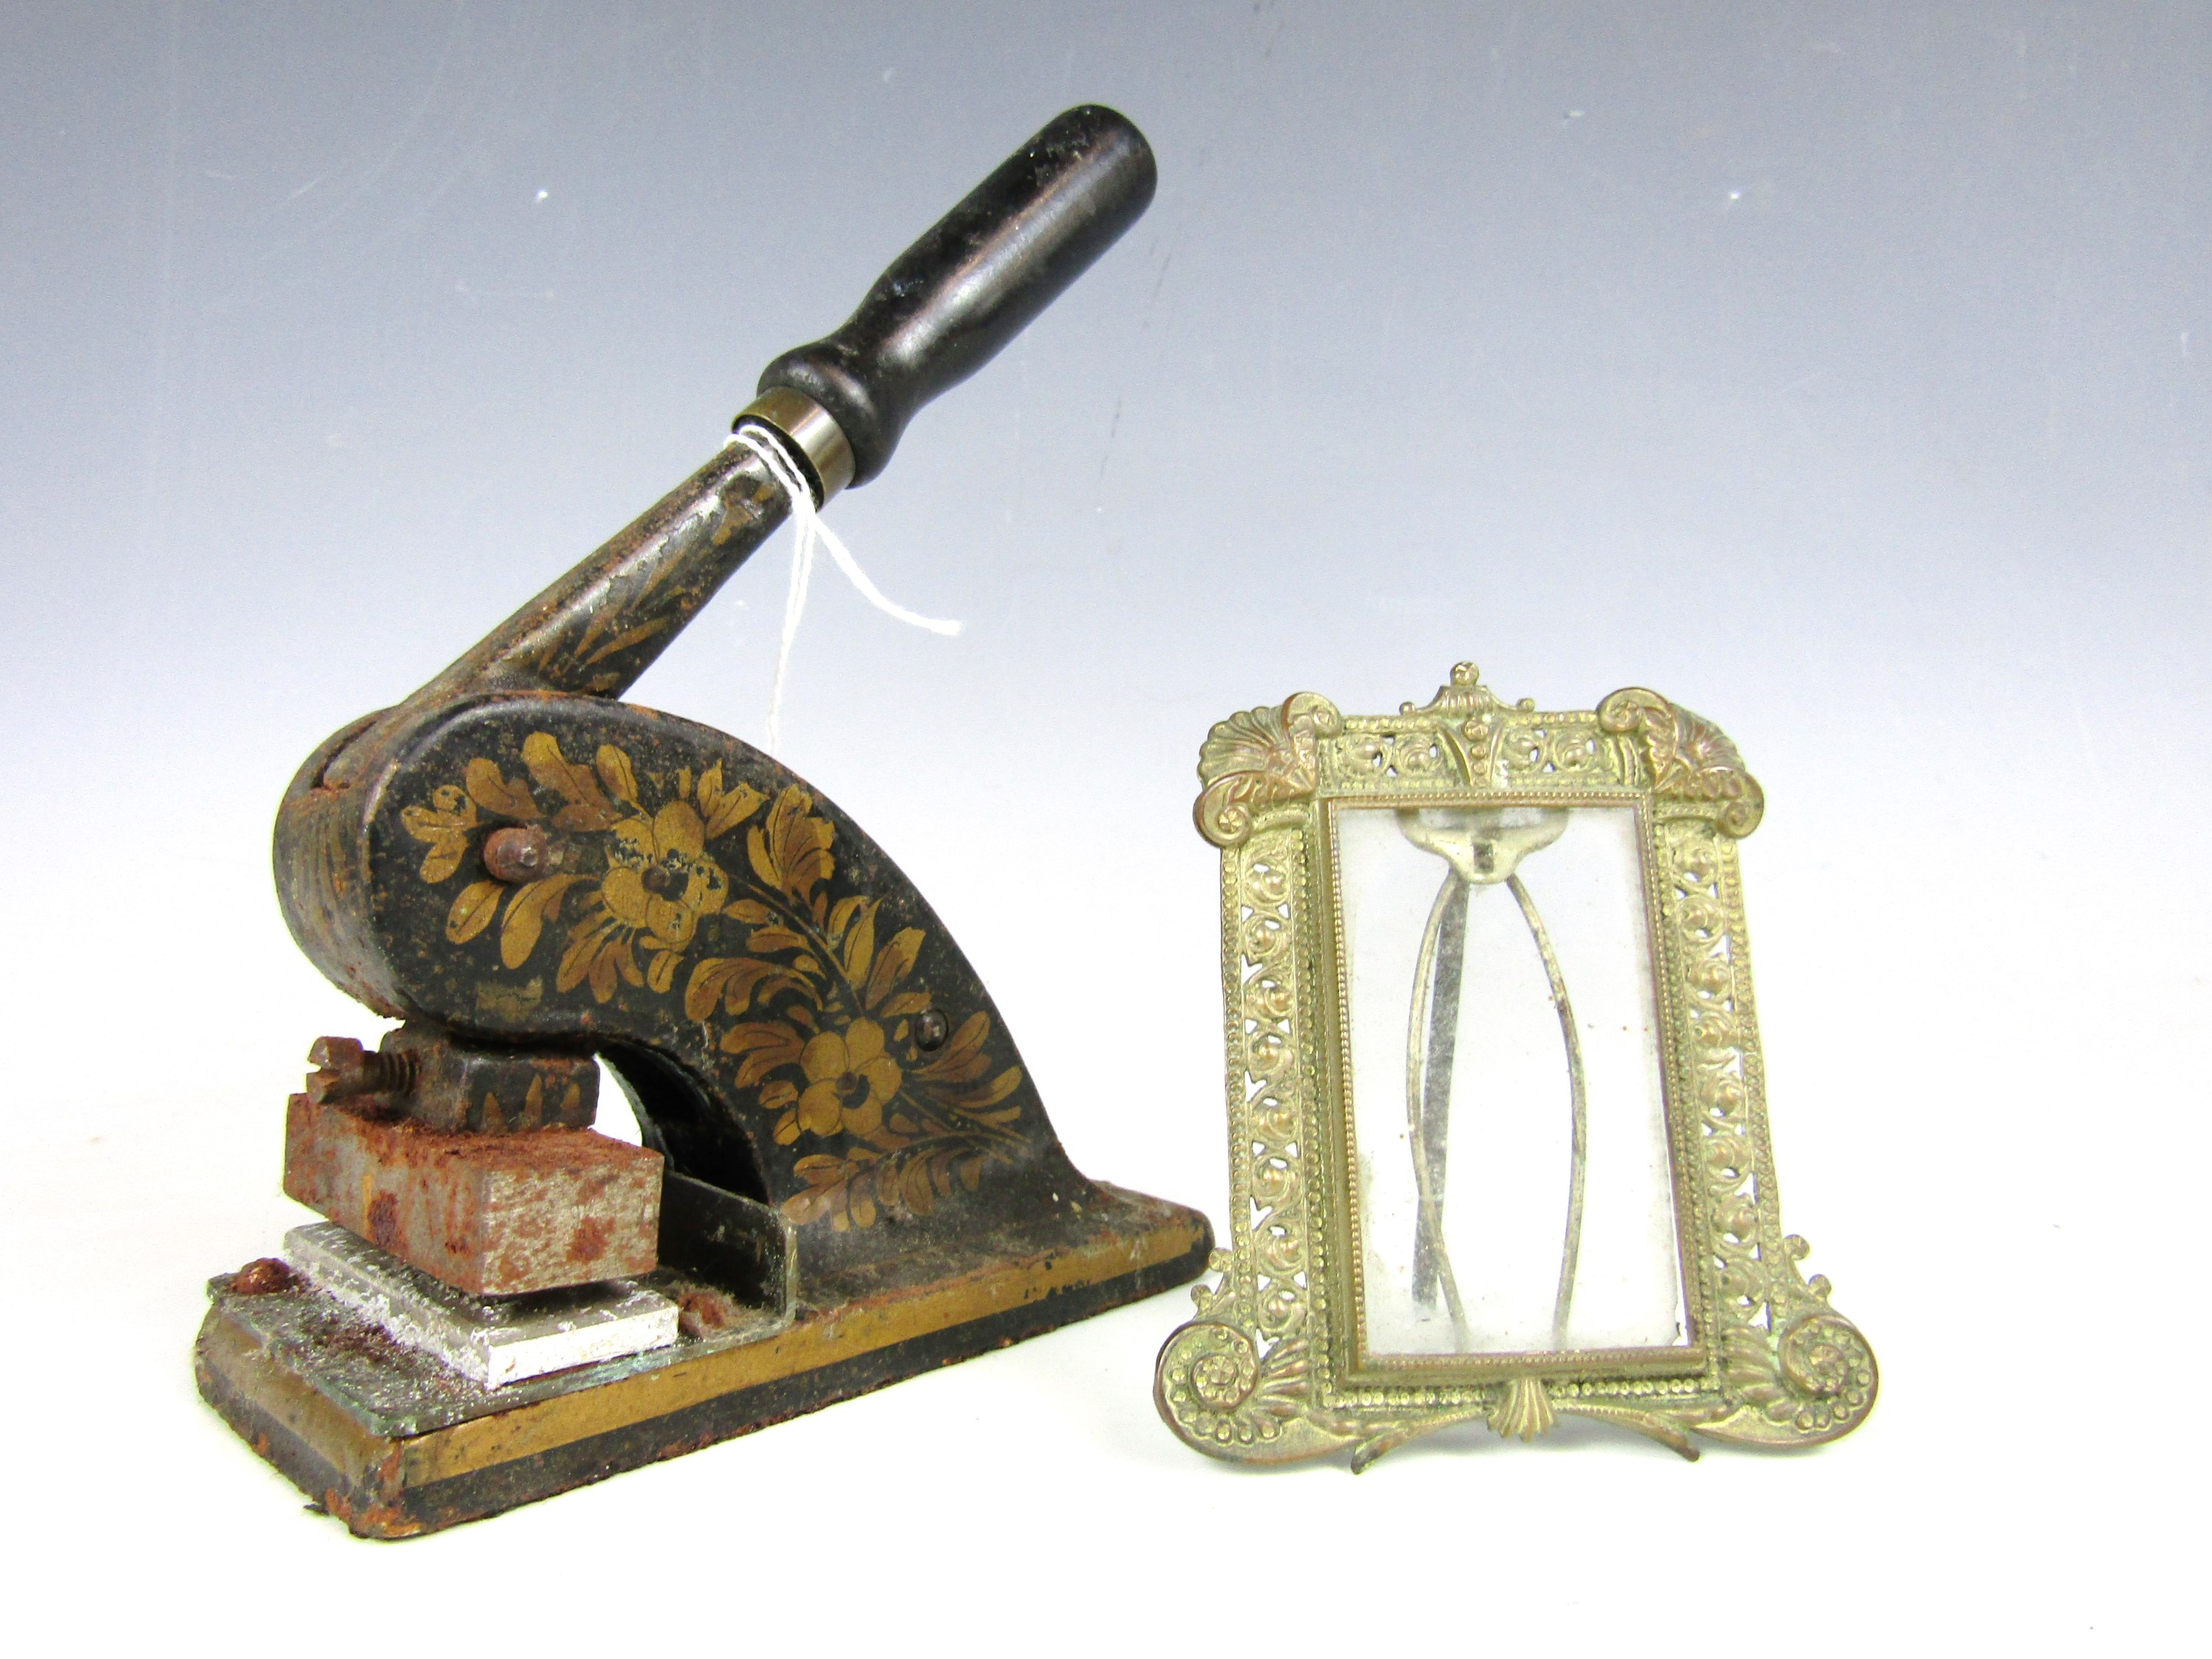 Lot 13 - A Victorian letterhead blind embossing press together with a small metal photograph frame